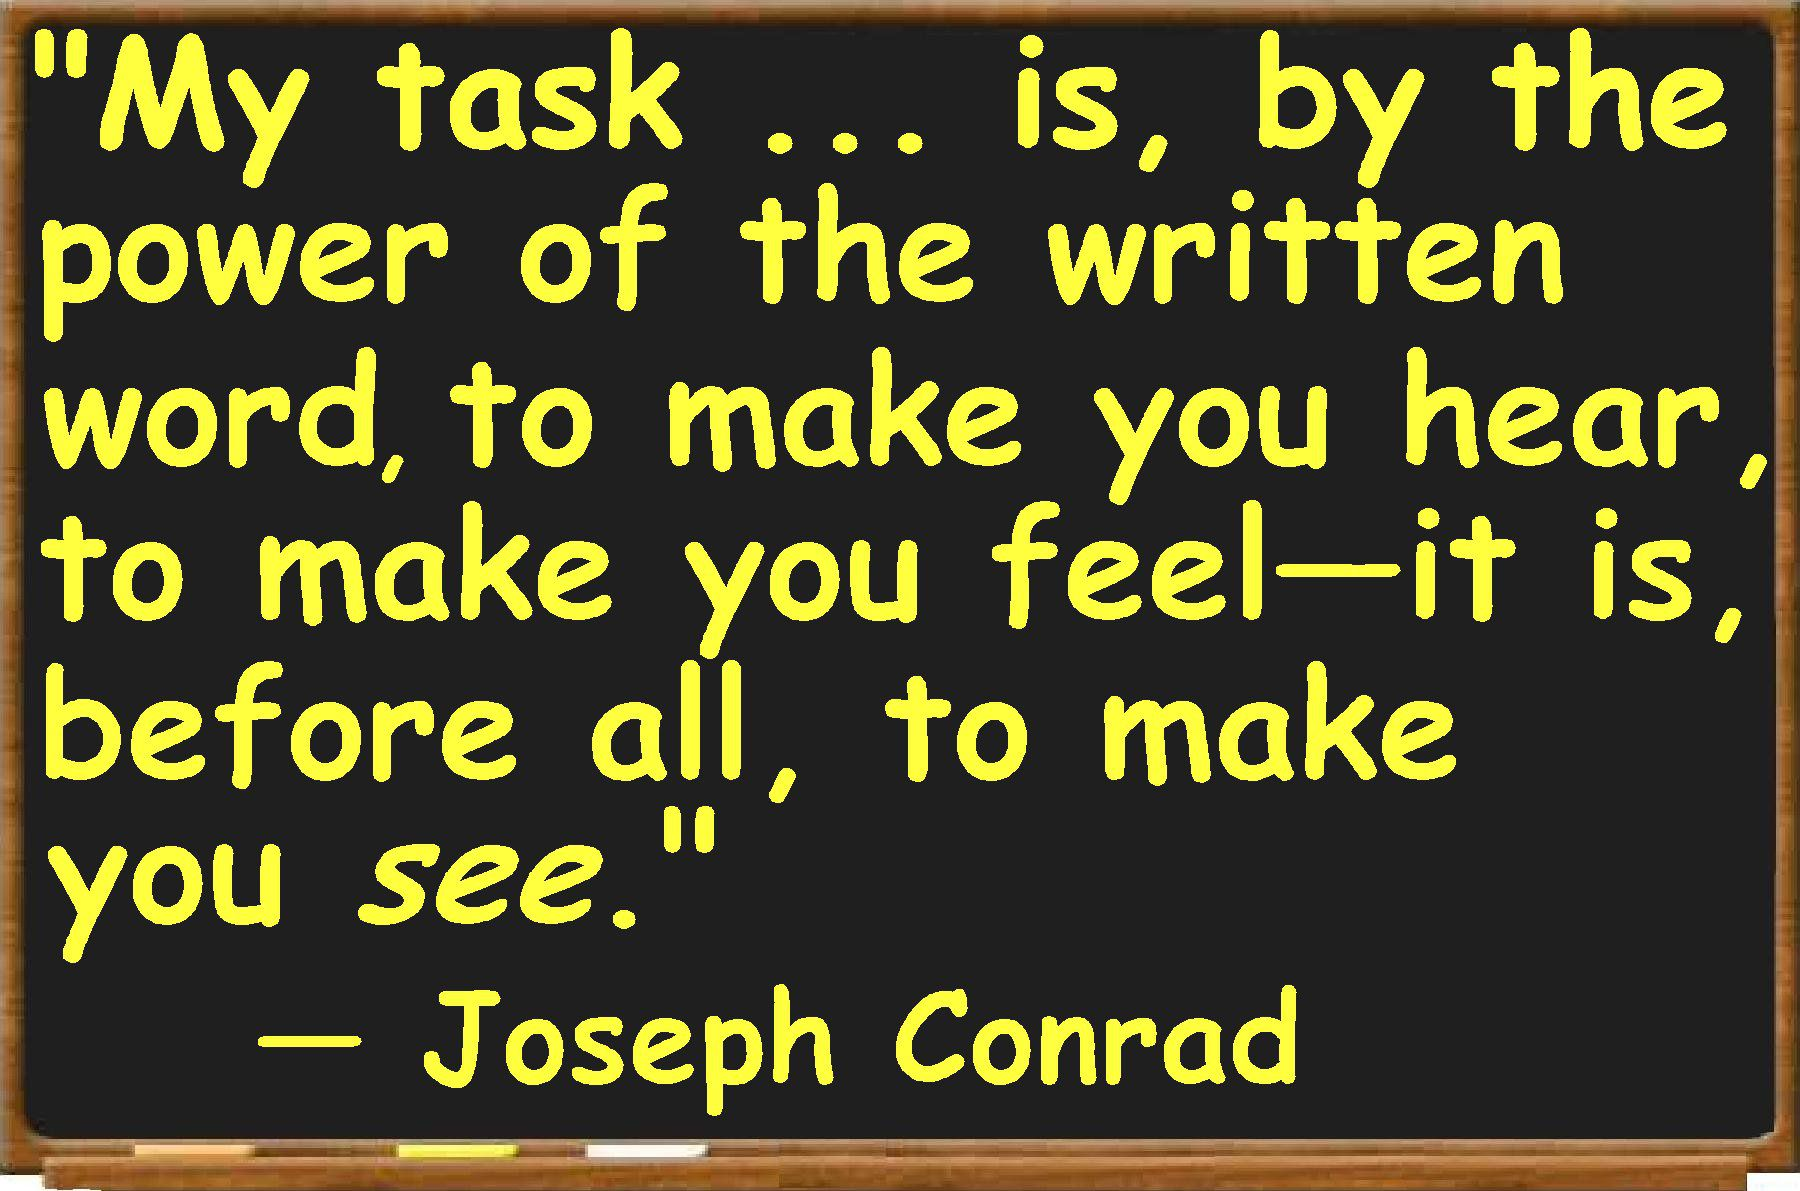 """joseph conrad writing style In joseph conrad's """"heart of darkness,"""" both a modernist style of writing and the impressionistic style for which conrad is."""